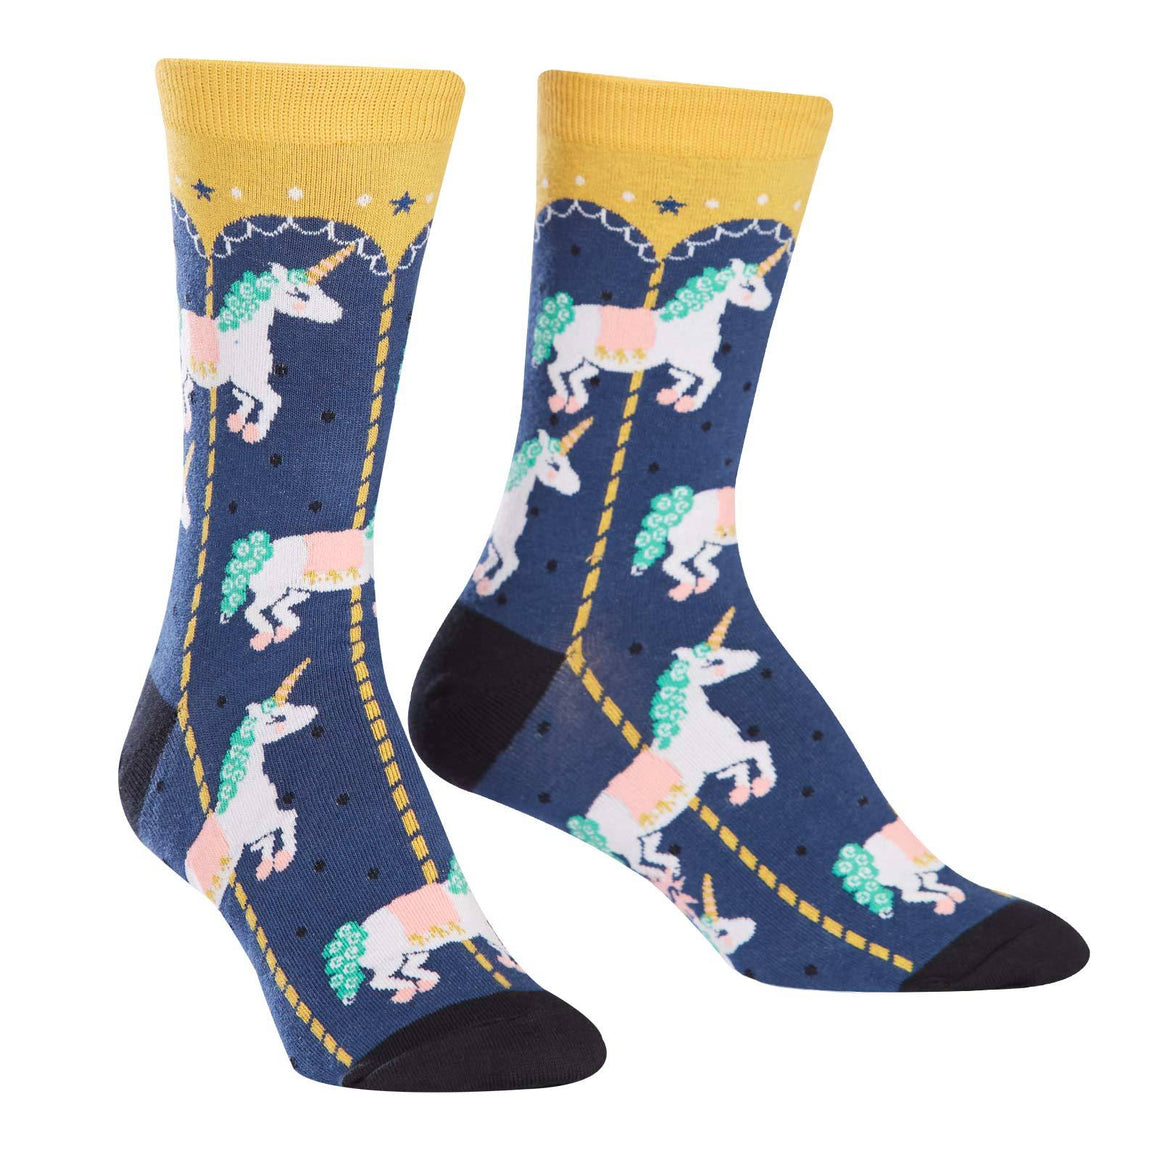 Carousel Women's Crew Socks